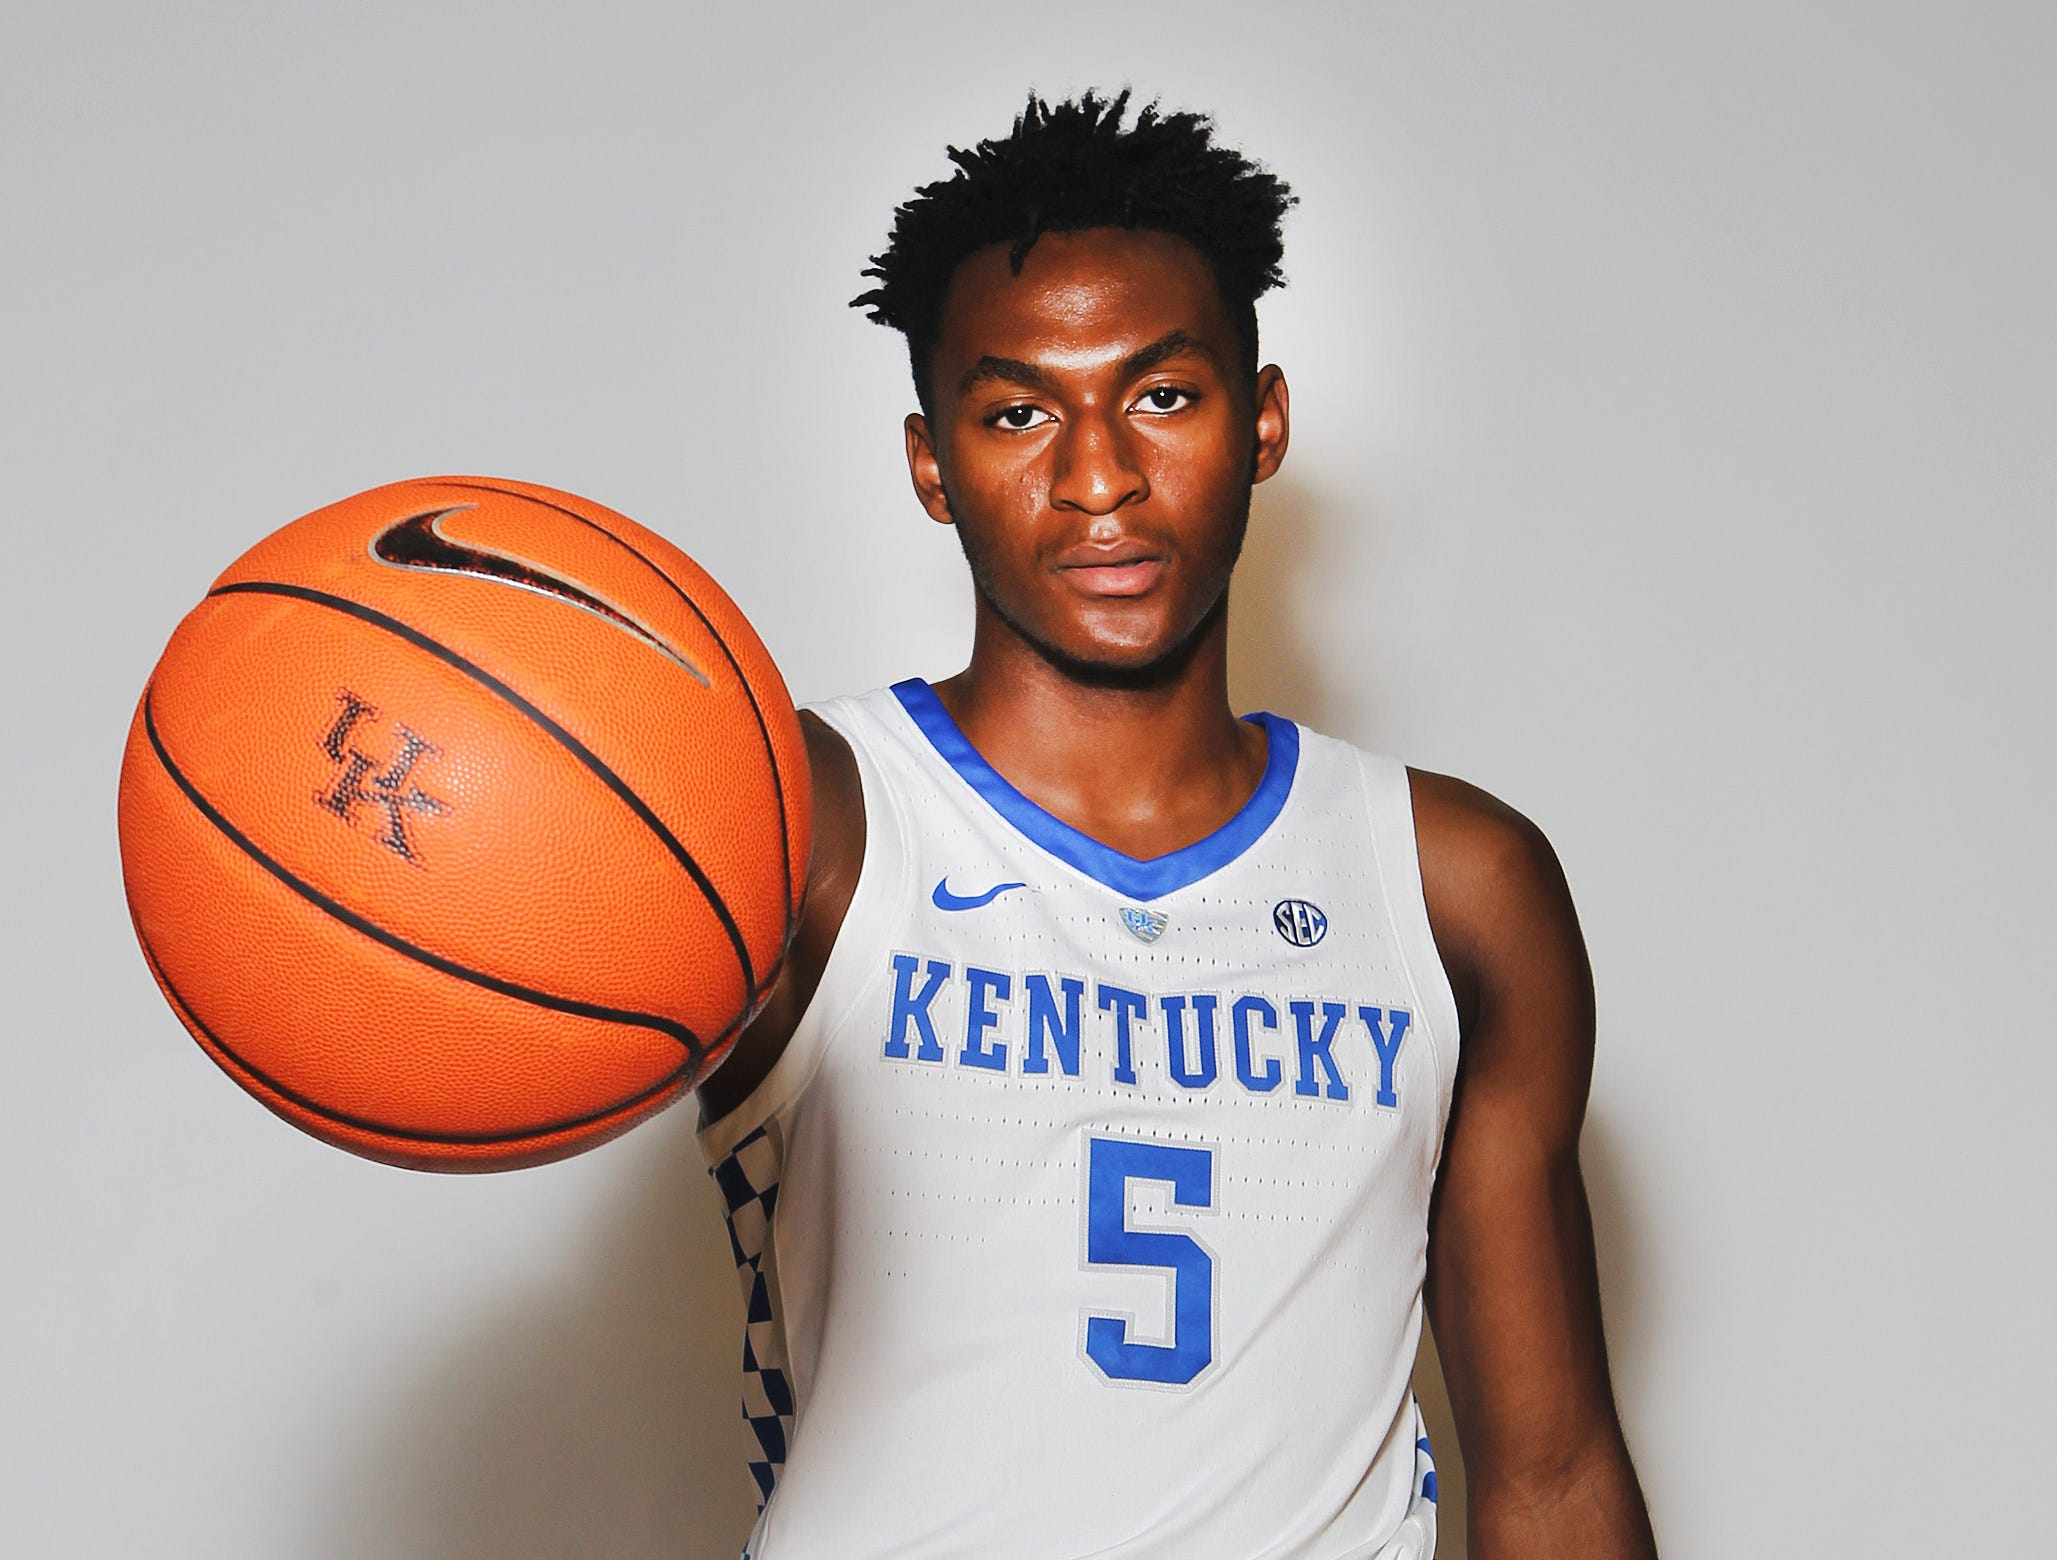 Kentucky's Immanuel Quickley poses during the teams picture day in Memorial Coliseum on campus. Sep. 20, 2018